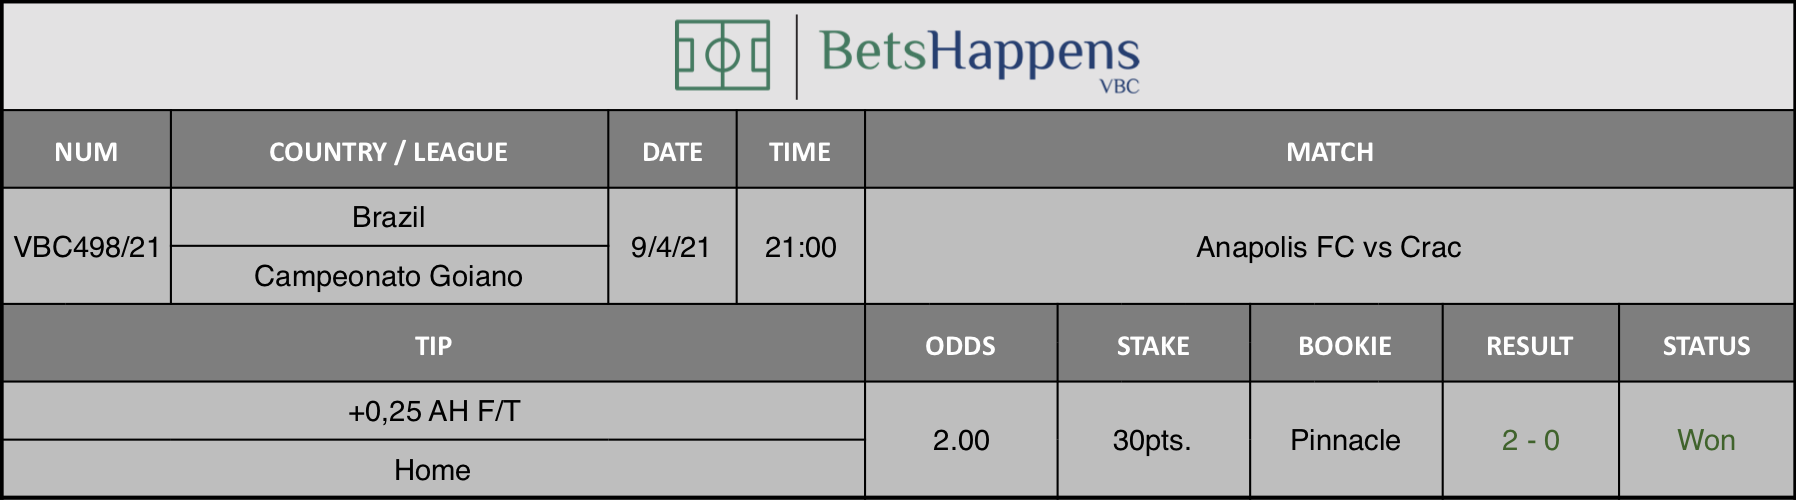 Results of our tip for the Anapolis FC vs Crac match where +0,25 AH F/T  Home is recommended.